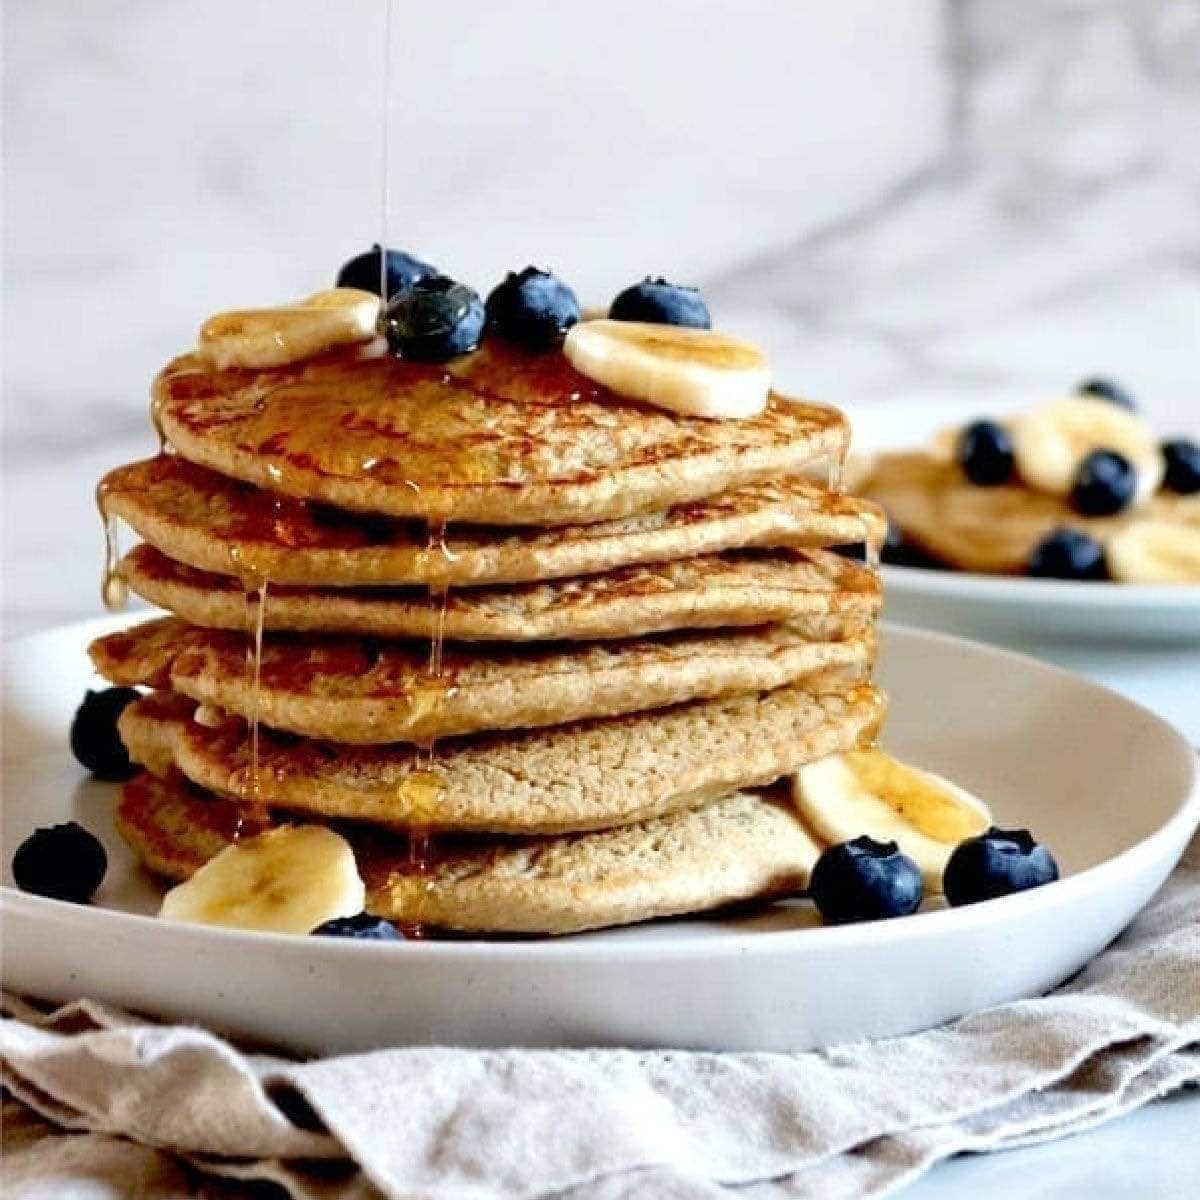 Stack of vegan oat pancakes topped with blueberries, bananas, and syrup.